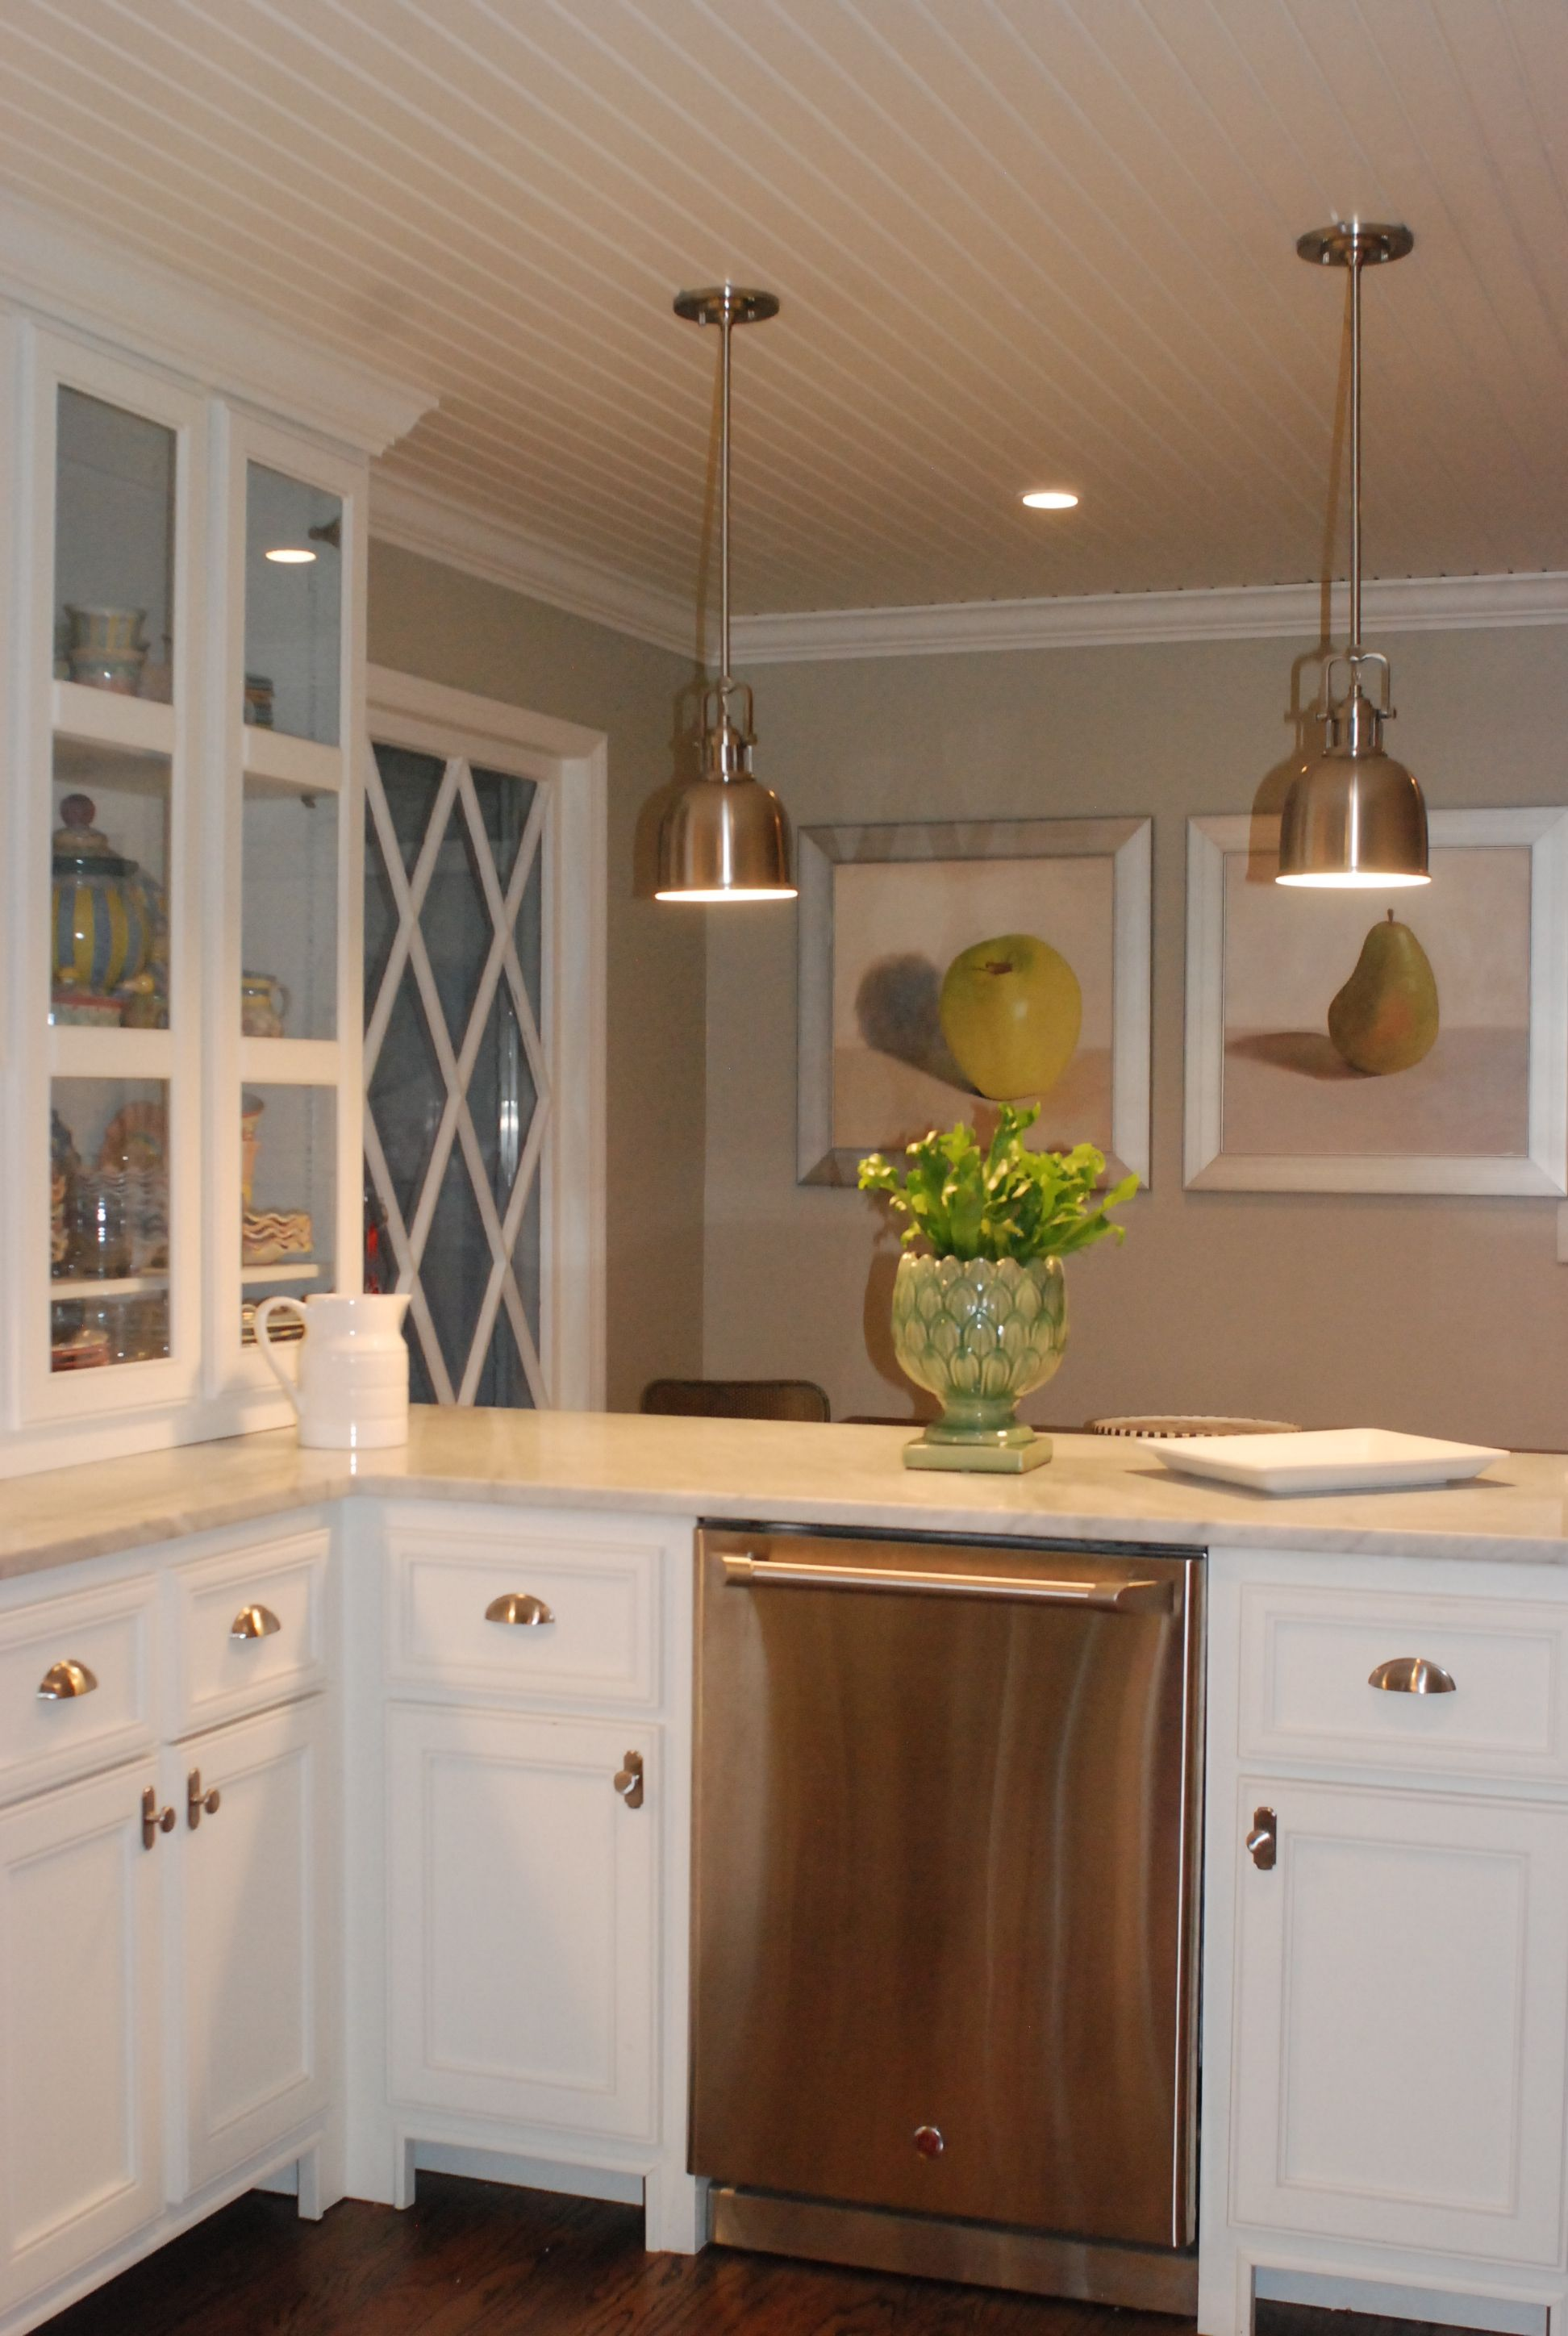 beige kitchen cabinets slip resistant shoes love the cream countertops against white